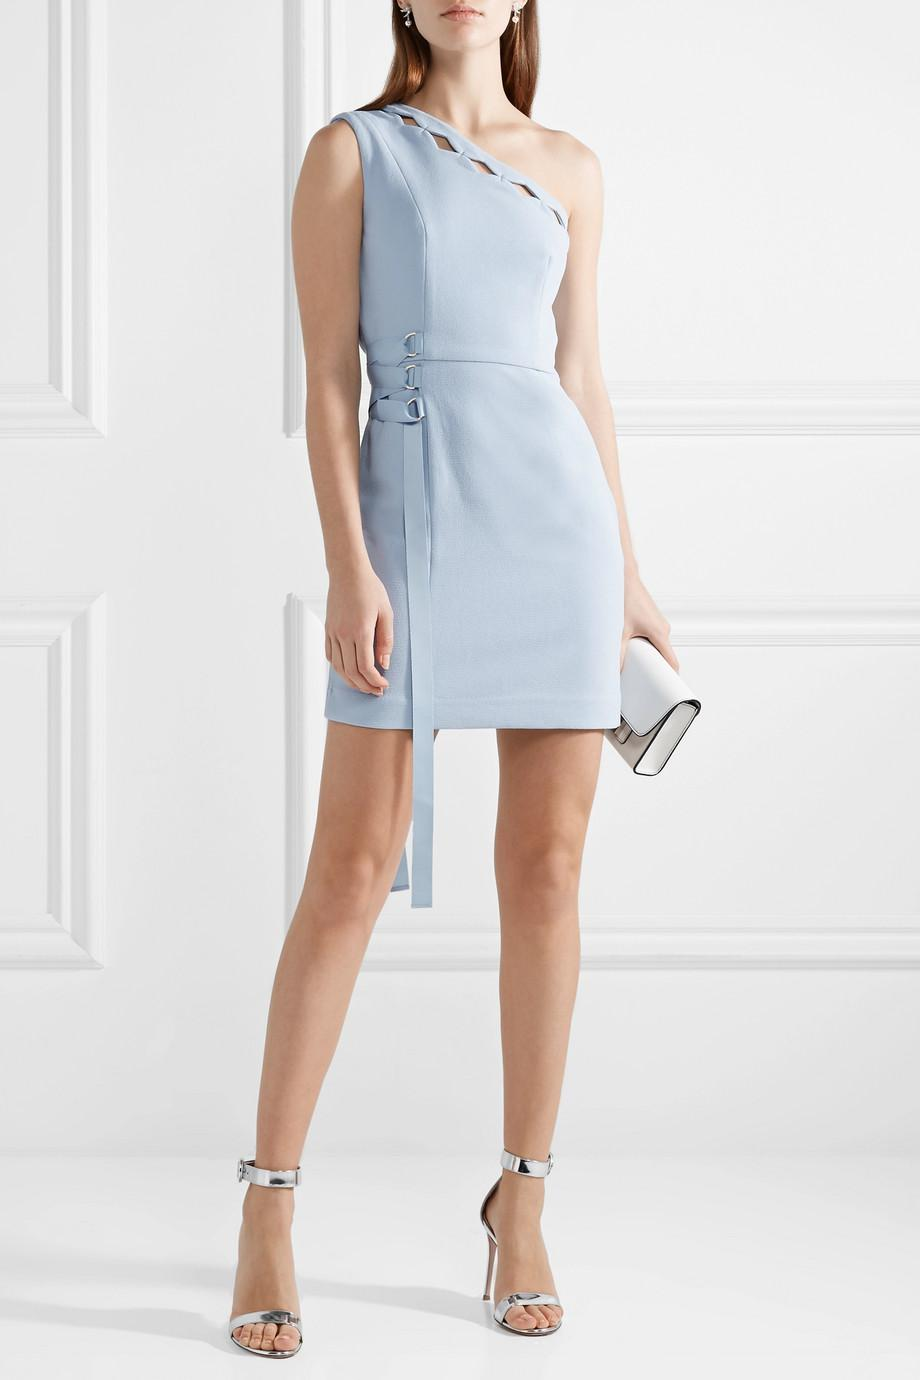 Barra Cutout One-shoulder Crepe Mini Dress - Sky blue Rebecca Vallance H9u69A